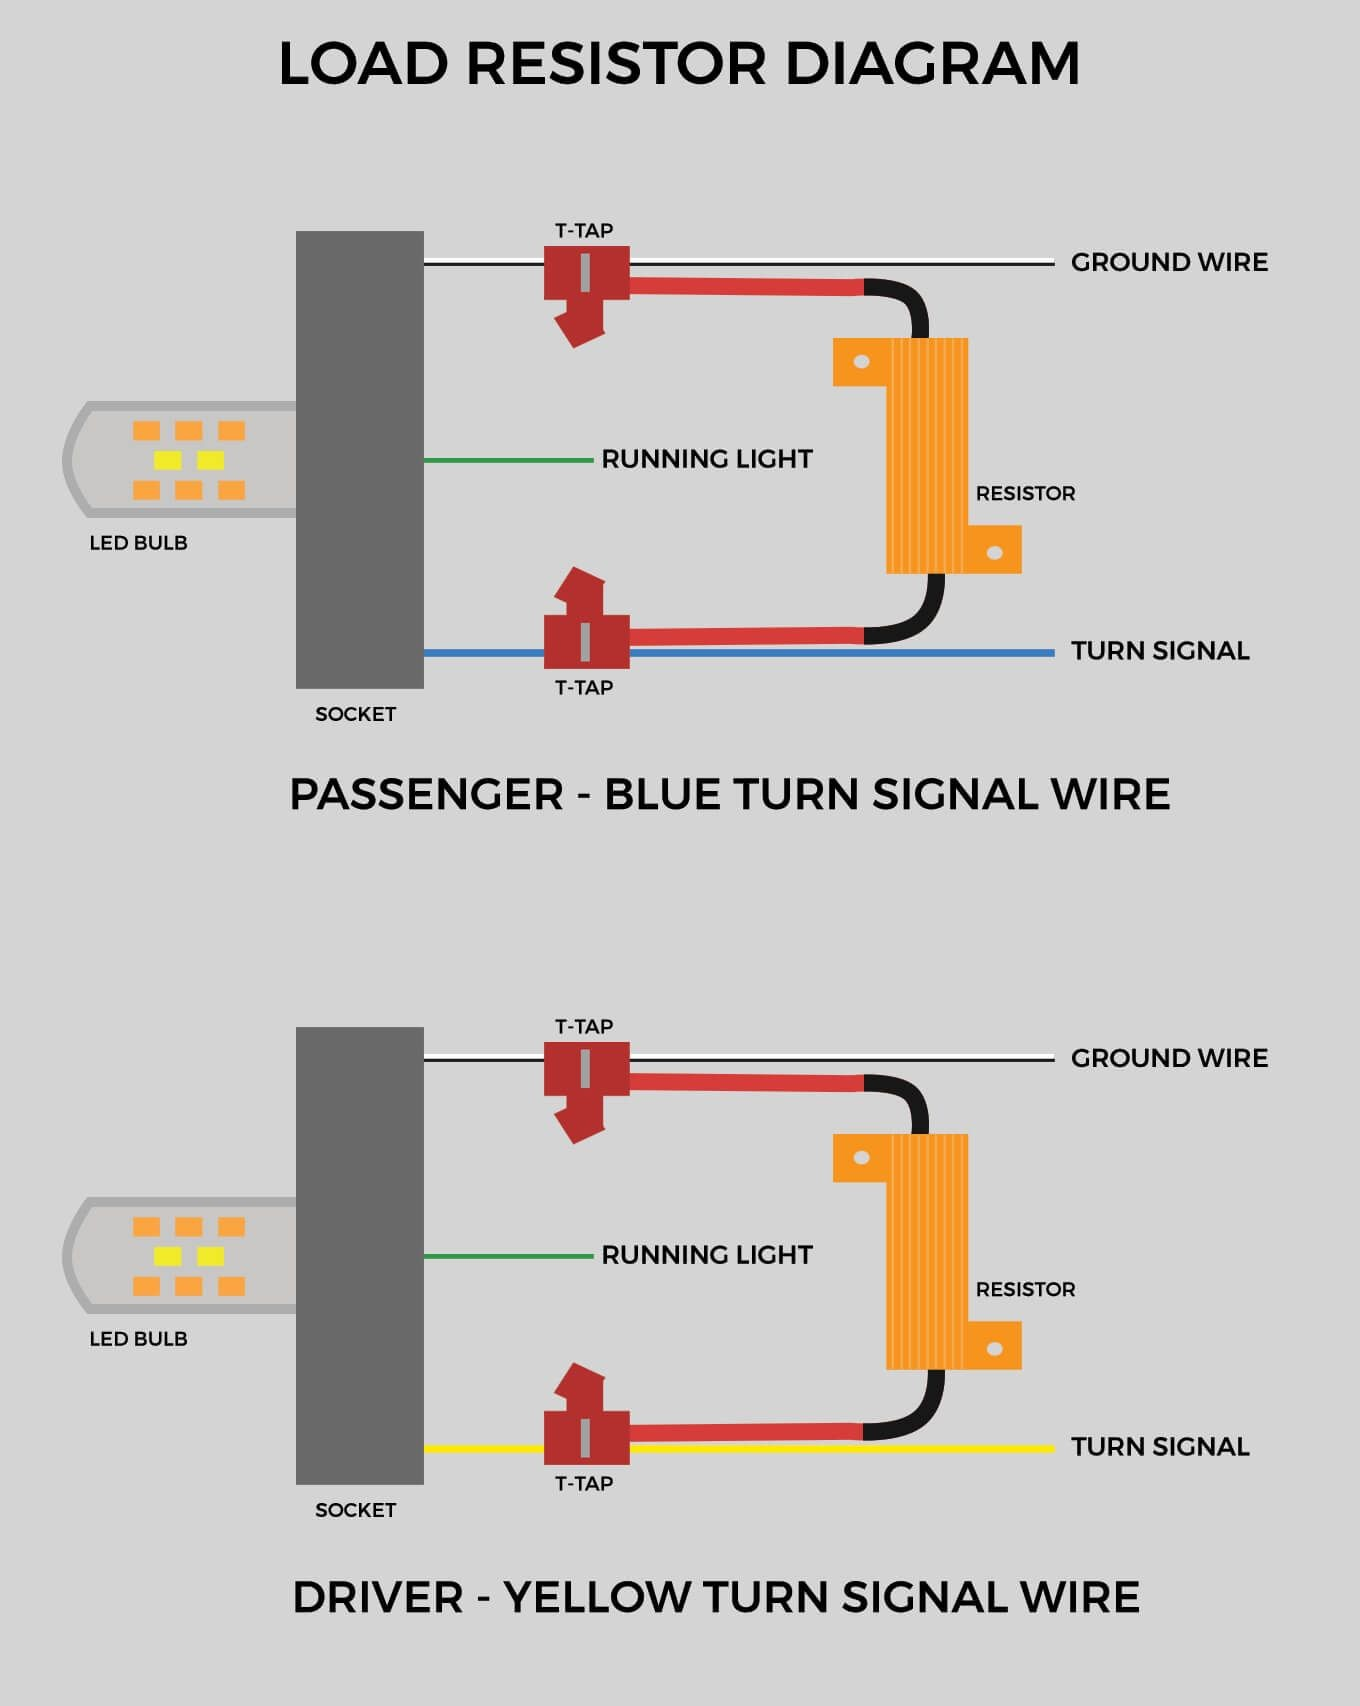 Turn Signal Flasher Wiring Diagram Turn Signal Light Wiring Diagram Wiring Diagram Paper Of Turn Signal Flasher Wiring Diagram Mga Turn Signal Wiring Diagram 15 13nualuniverse •